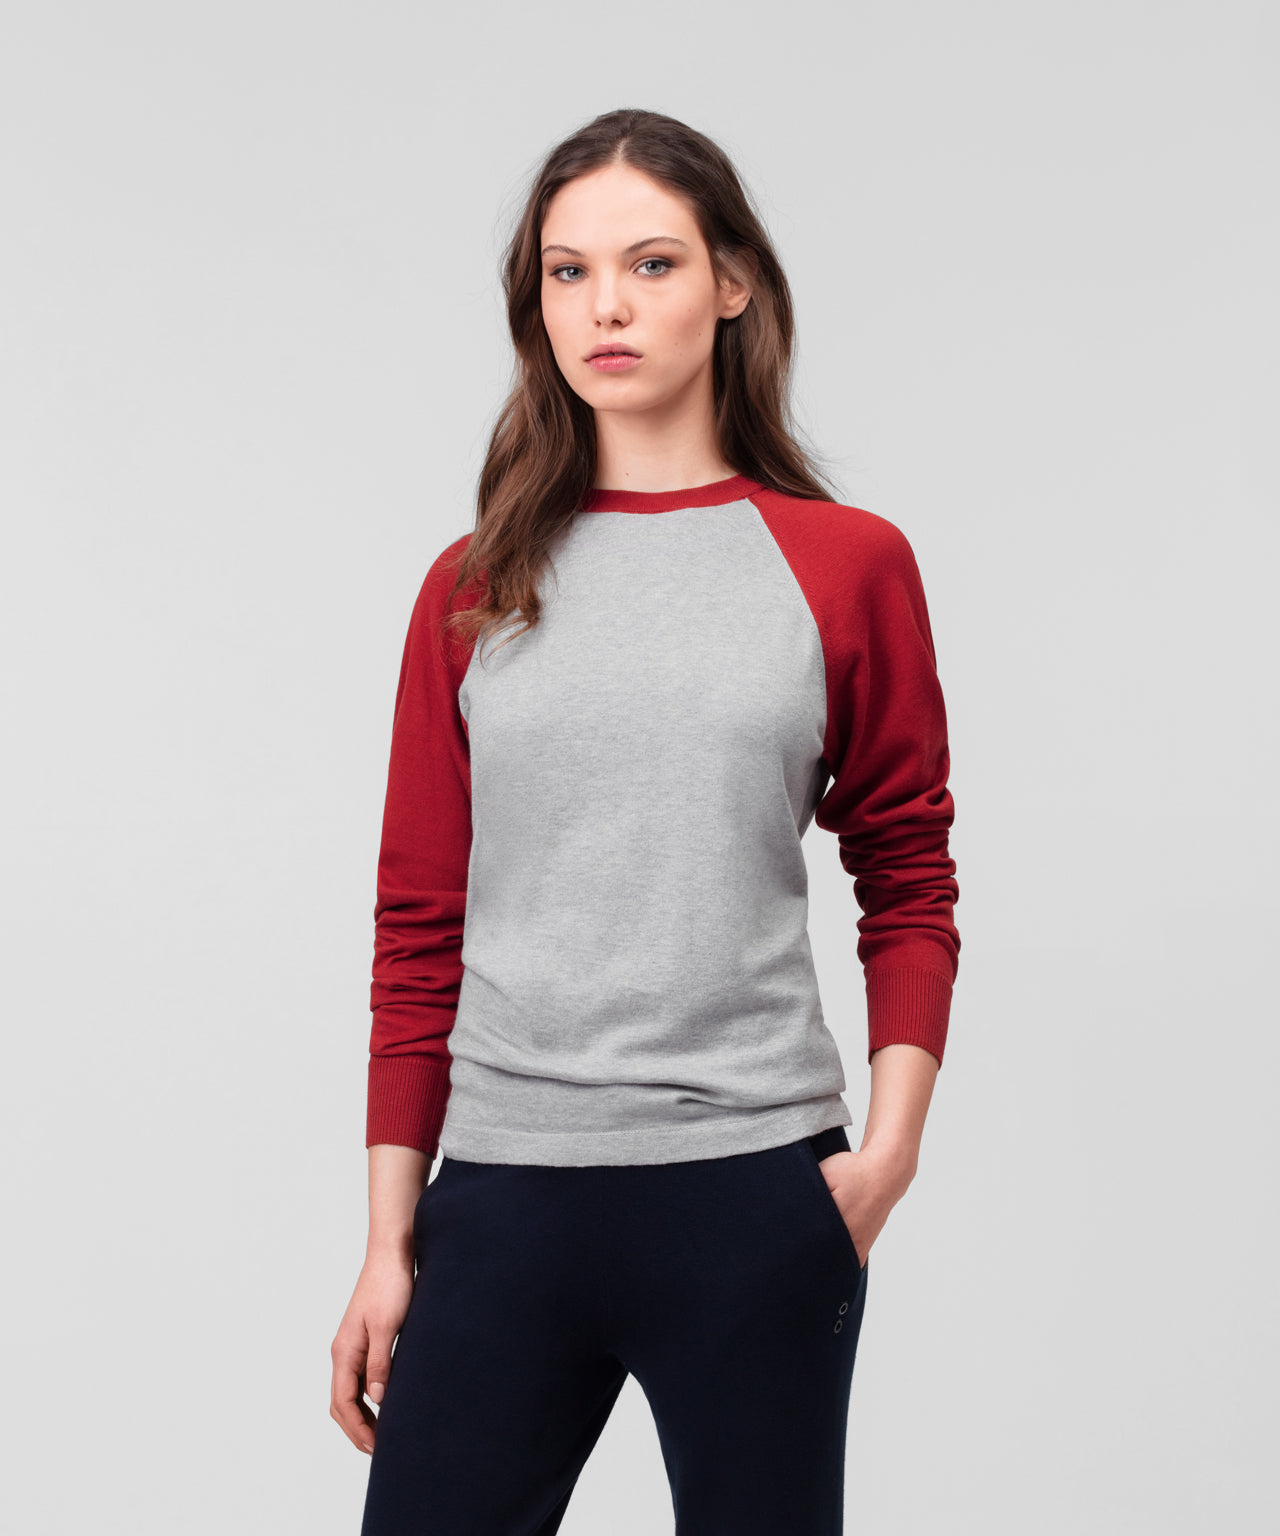 Cotton Cashmere Baseball T-Shirt His For Her - red deep